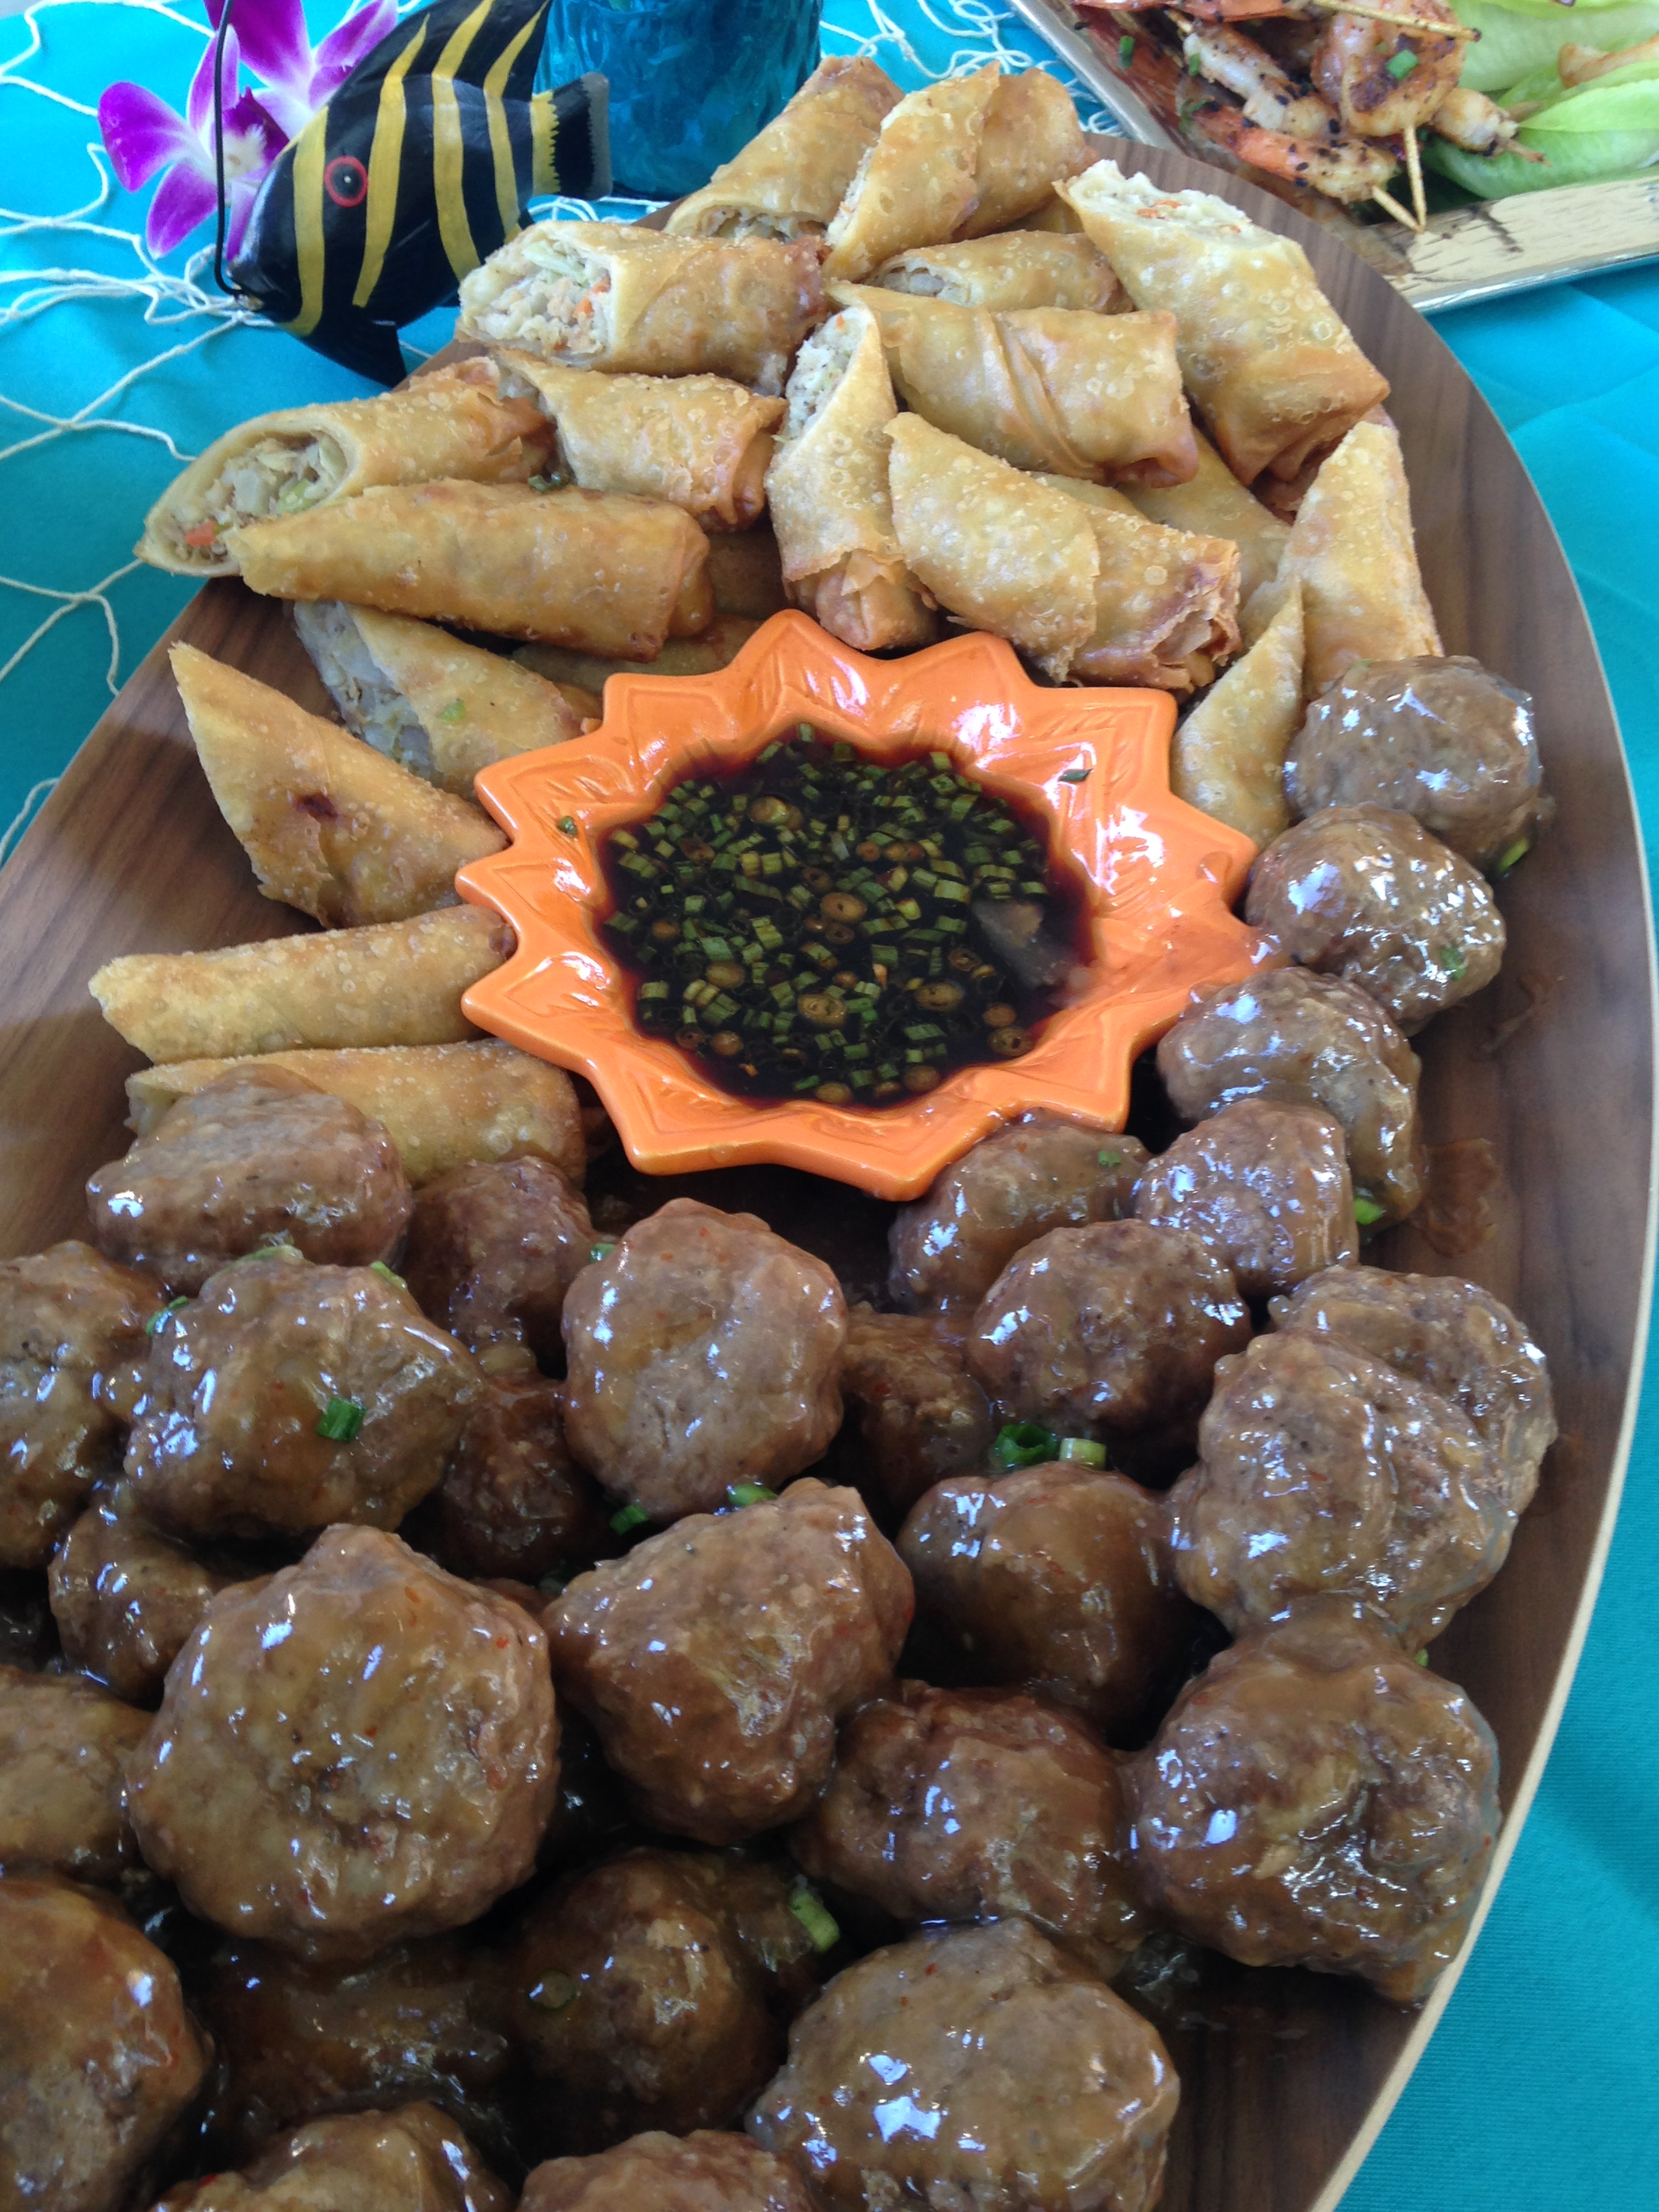 Guava sauced meatballs, and egg roll